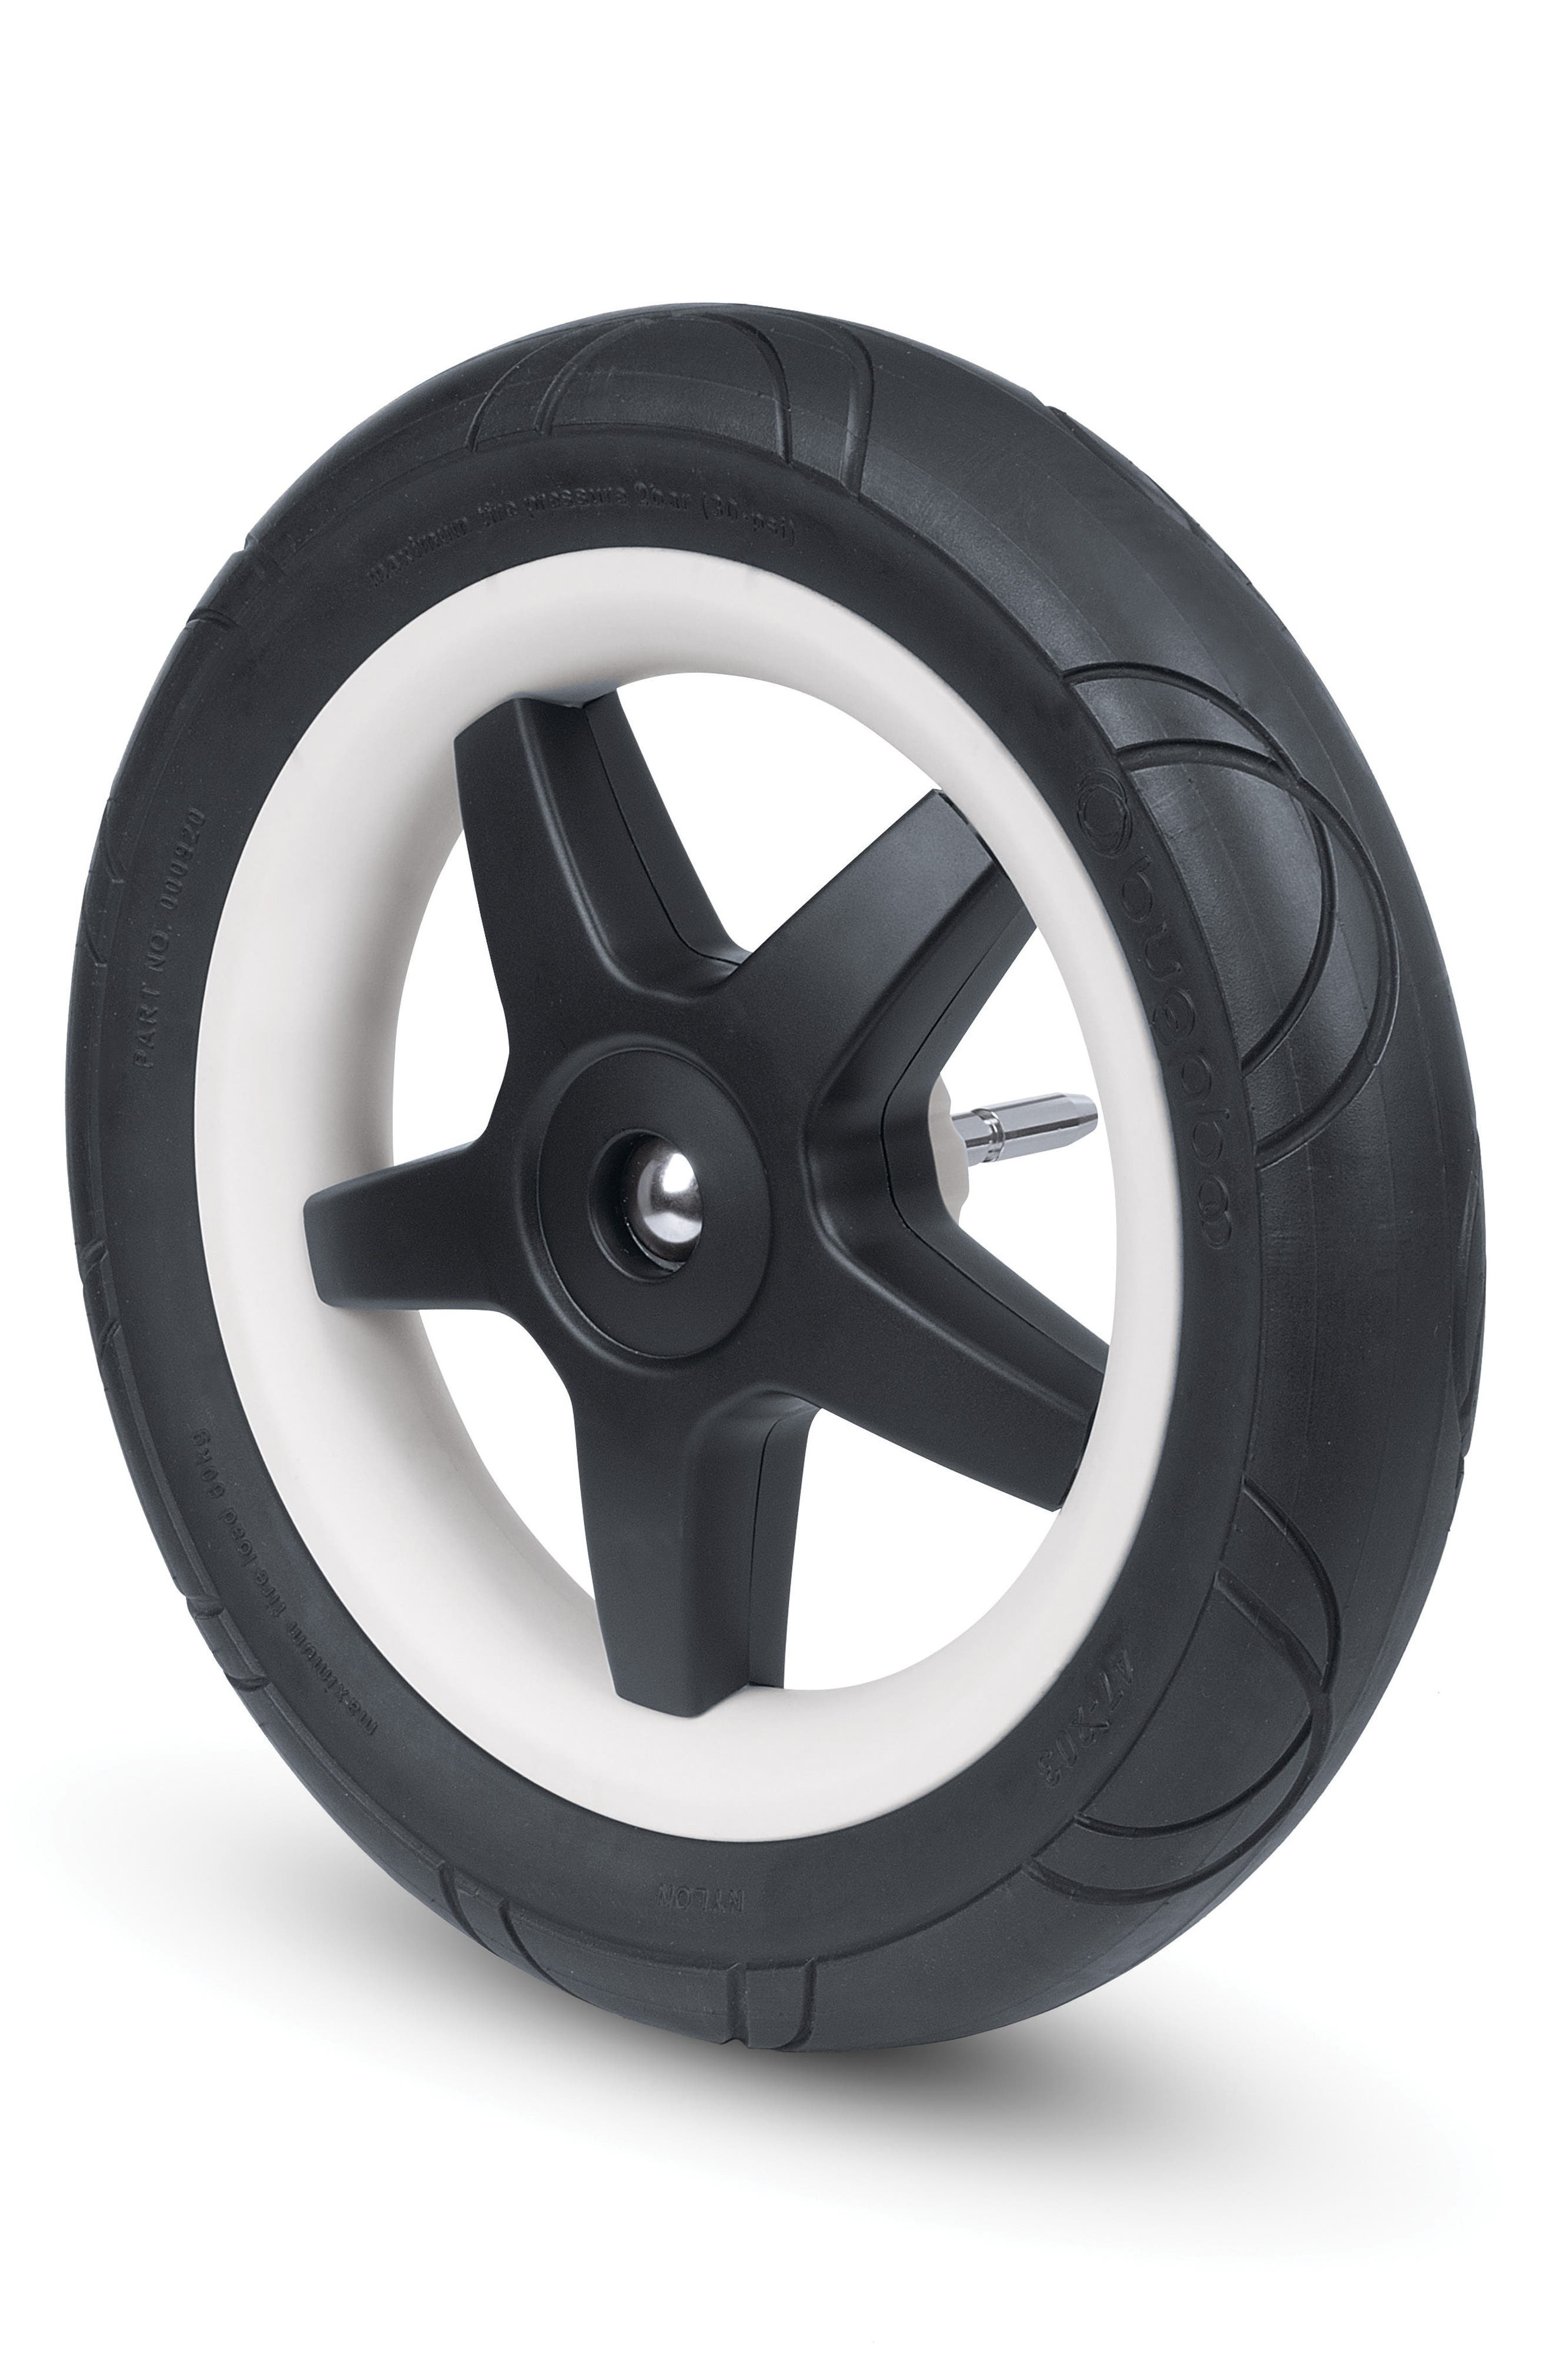 4-Piece Foam Wheel Set for Donkey Series Strollers,                         Main,                         color, Black